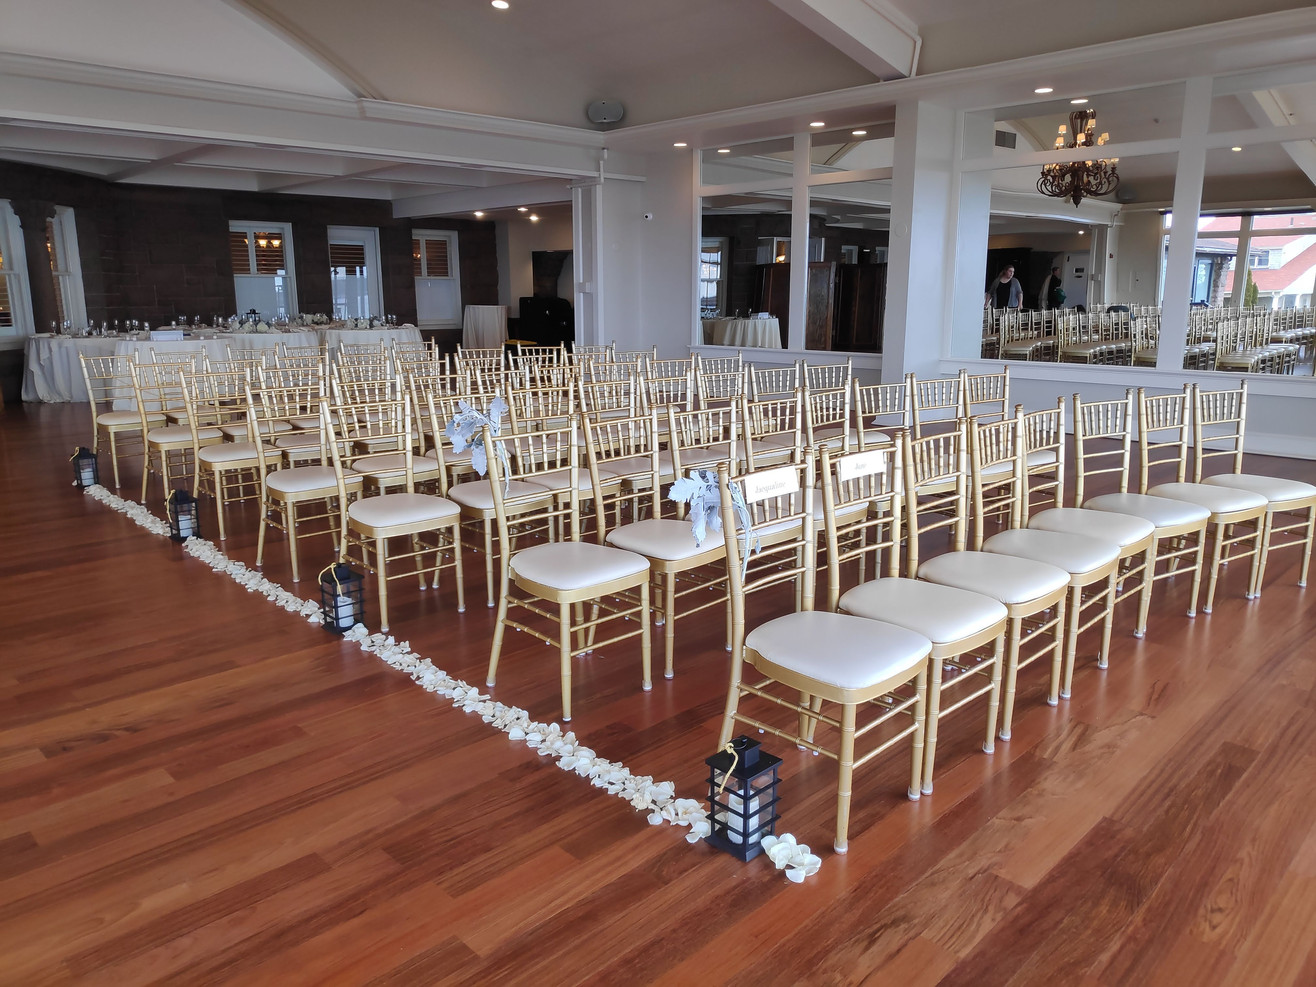 Aisle Decor:  Lanterns + Rose Petals + Gold Rope + Aisle Chair Decor